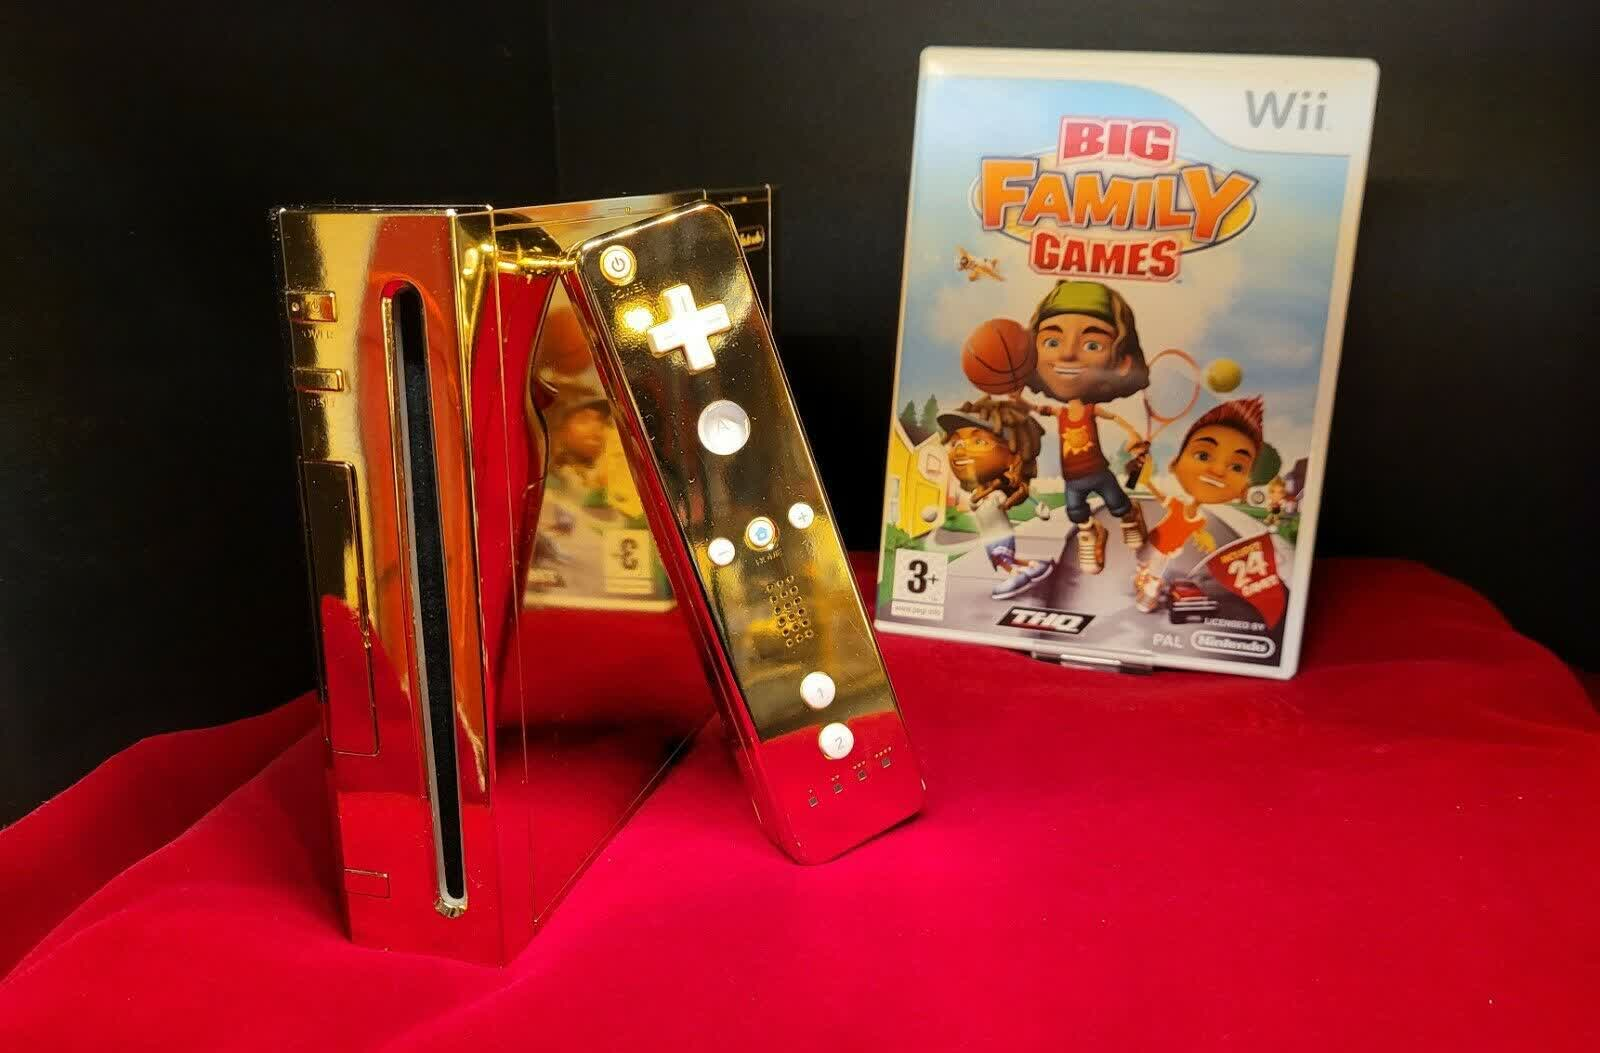 The 24 karat gold-plated Nintendo Wii made for the Queen can be yours for $300,000